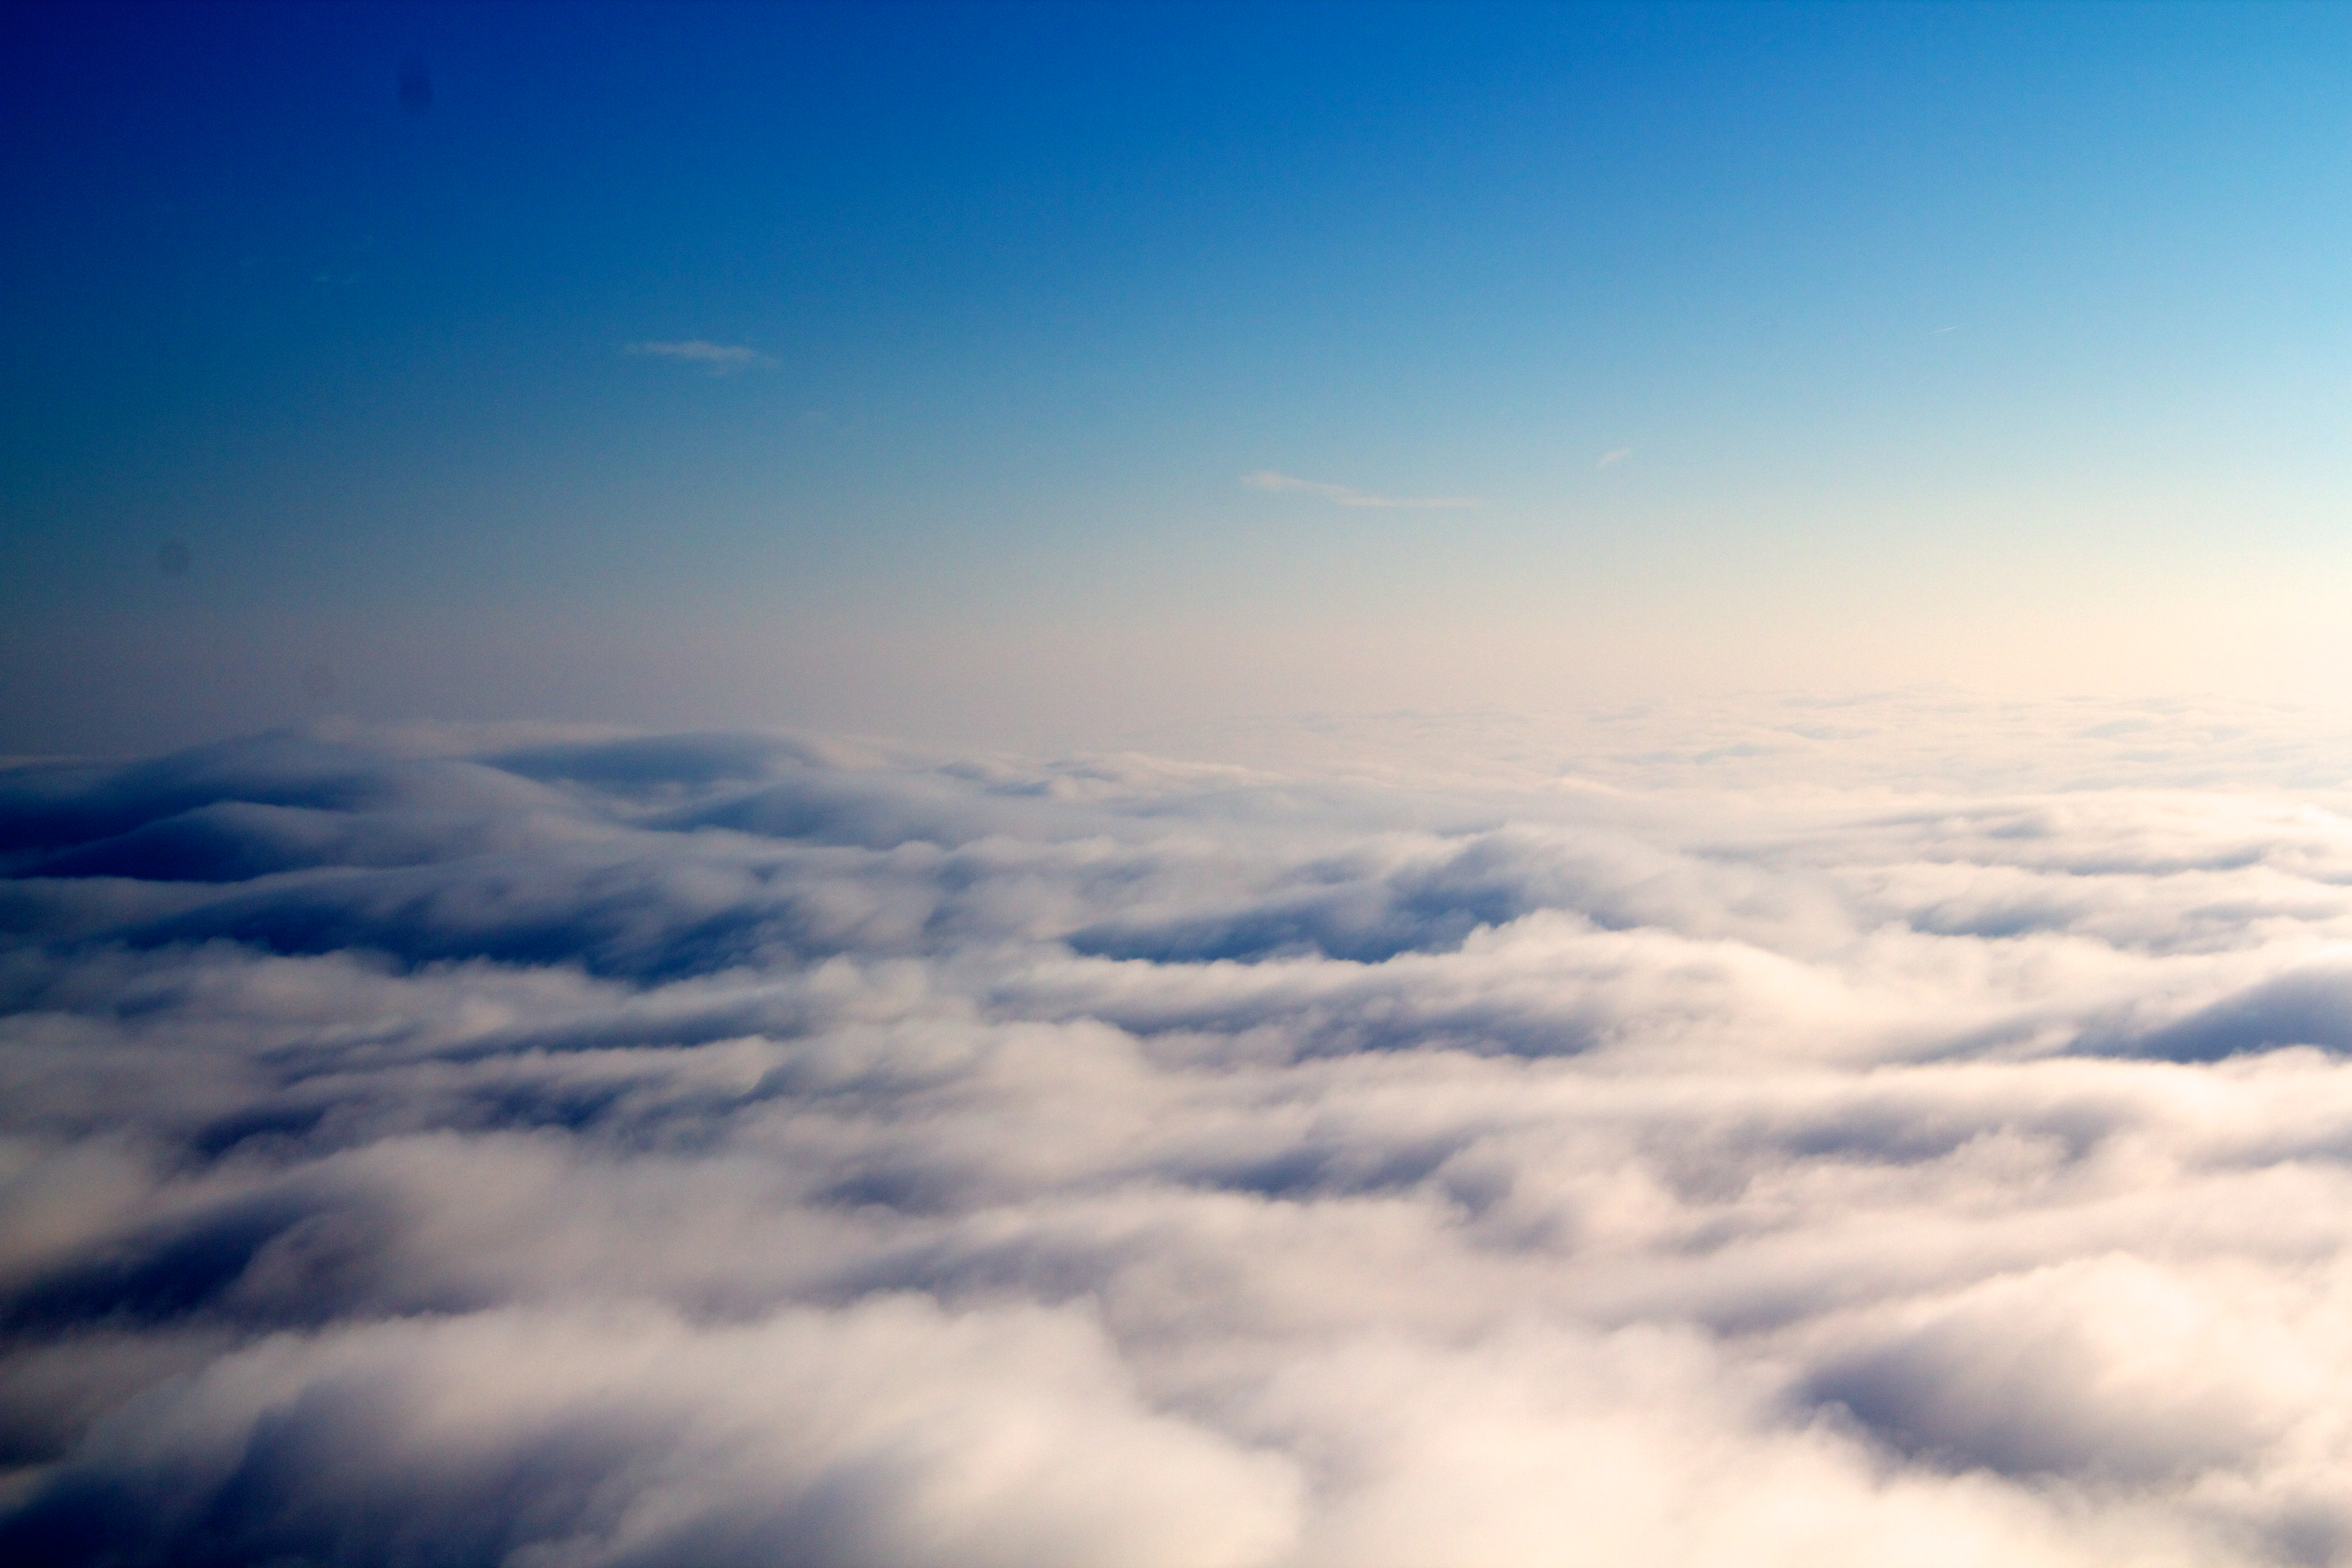 ocean above the clouds by cleanhead on deviantart